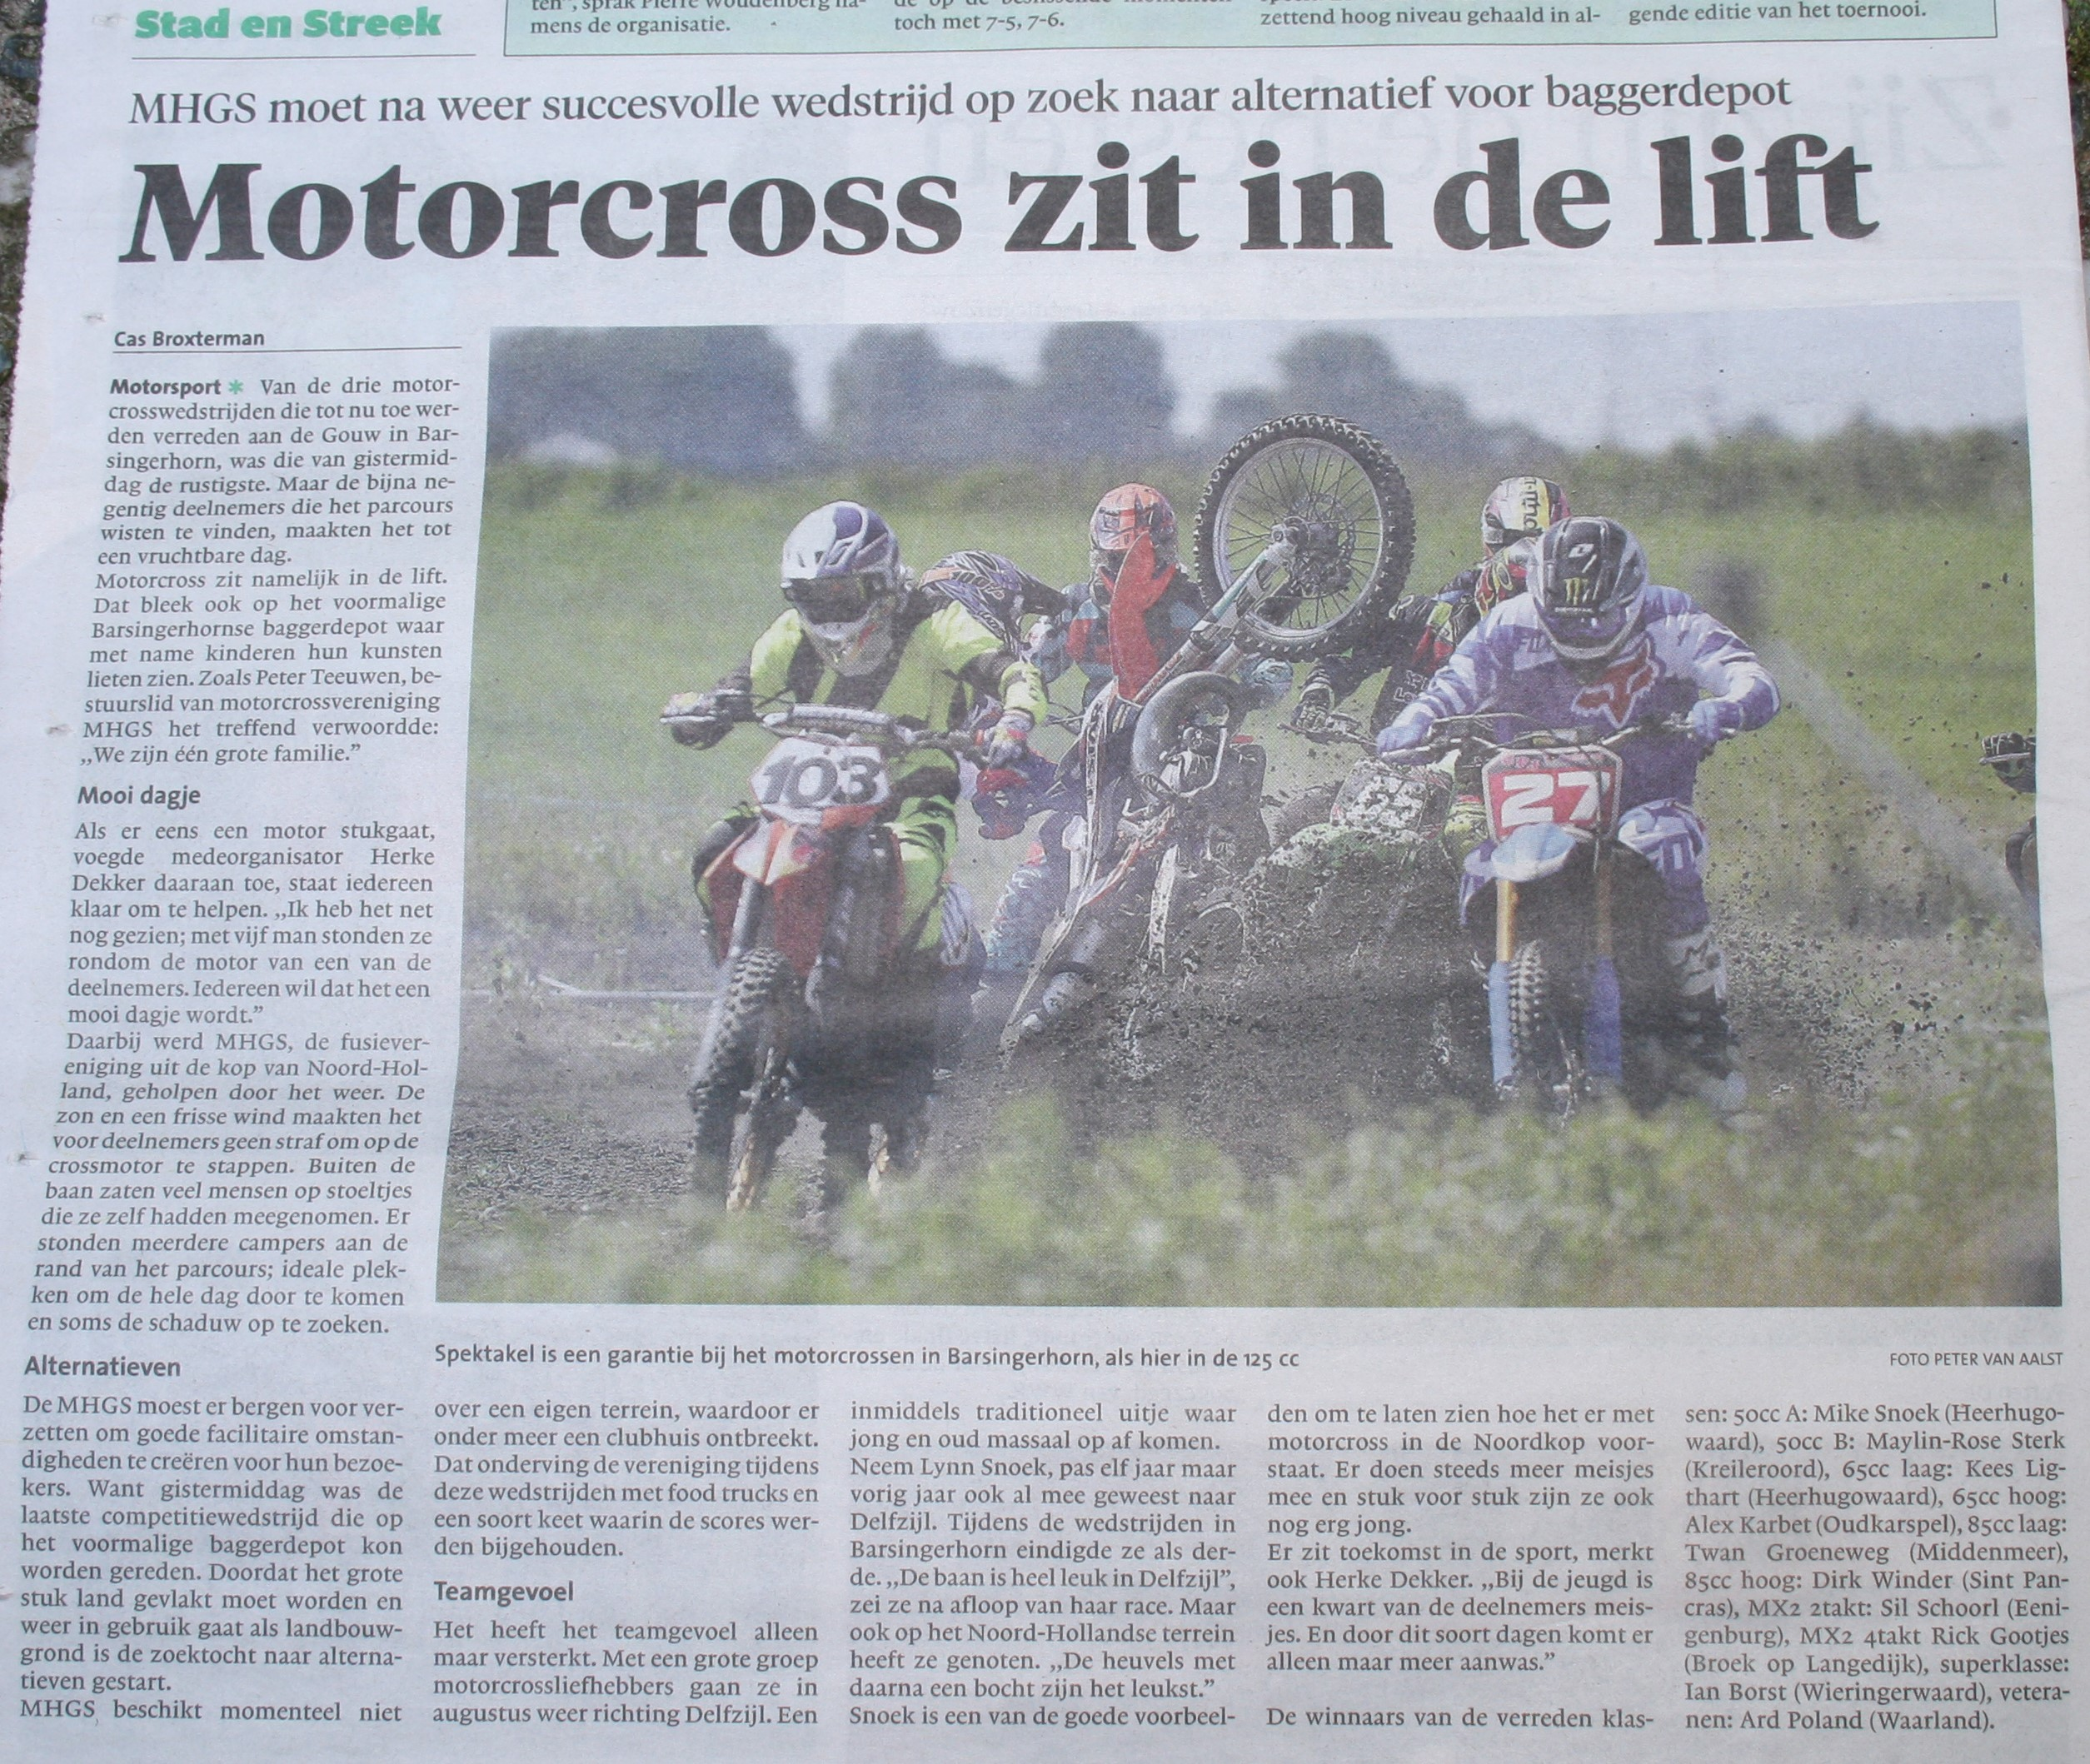 Motorcross zit in de lift - NDH 18-7-2016